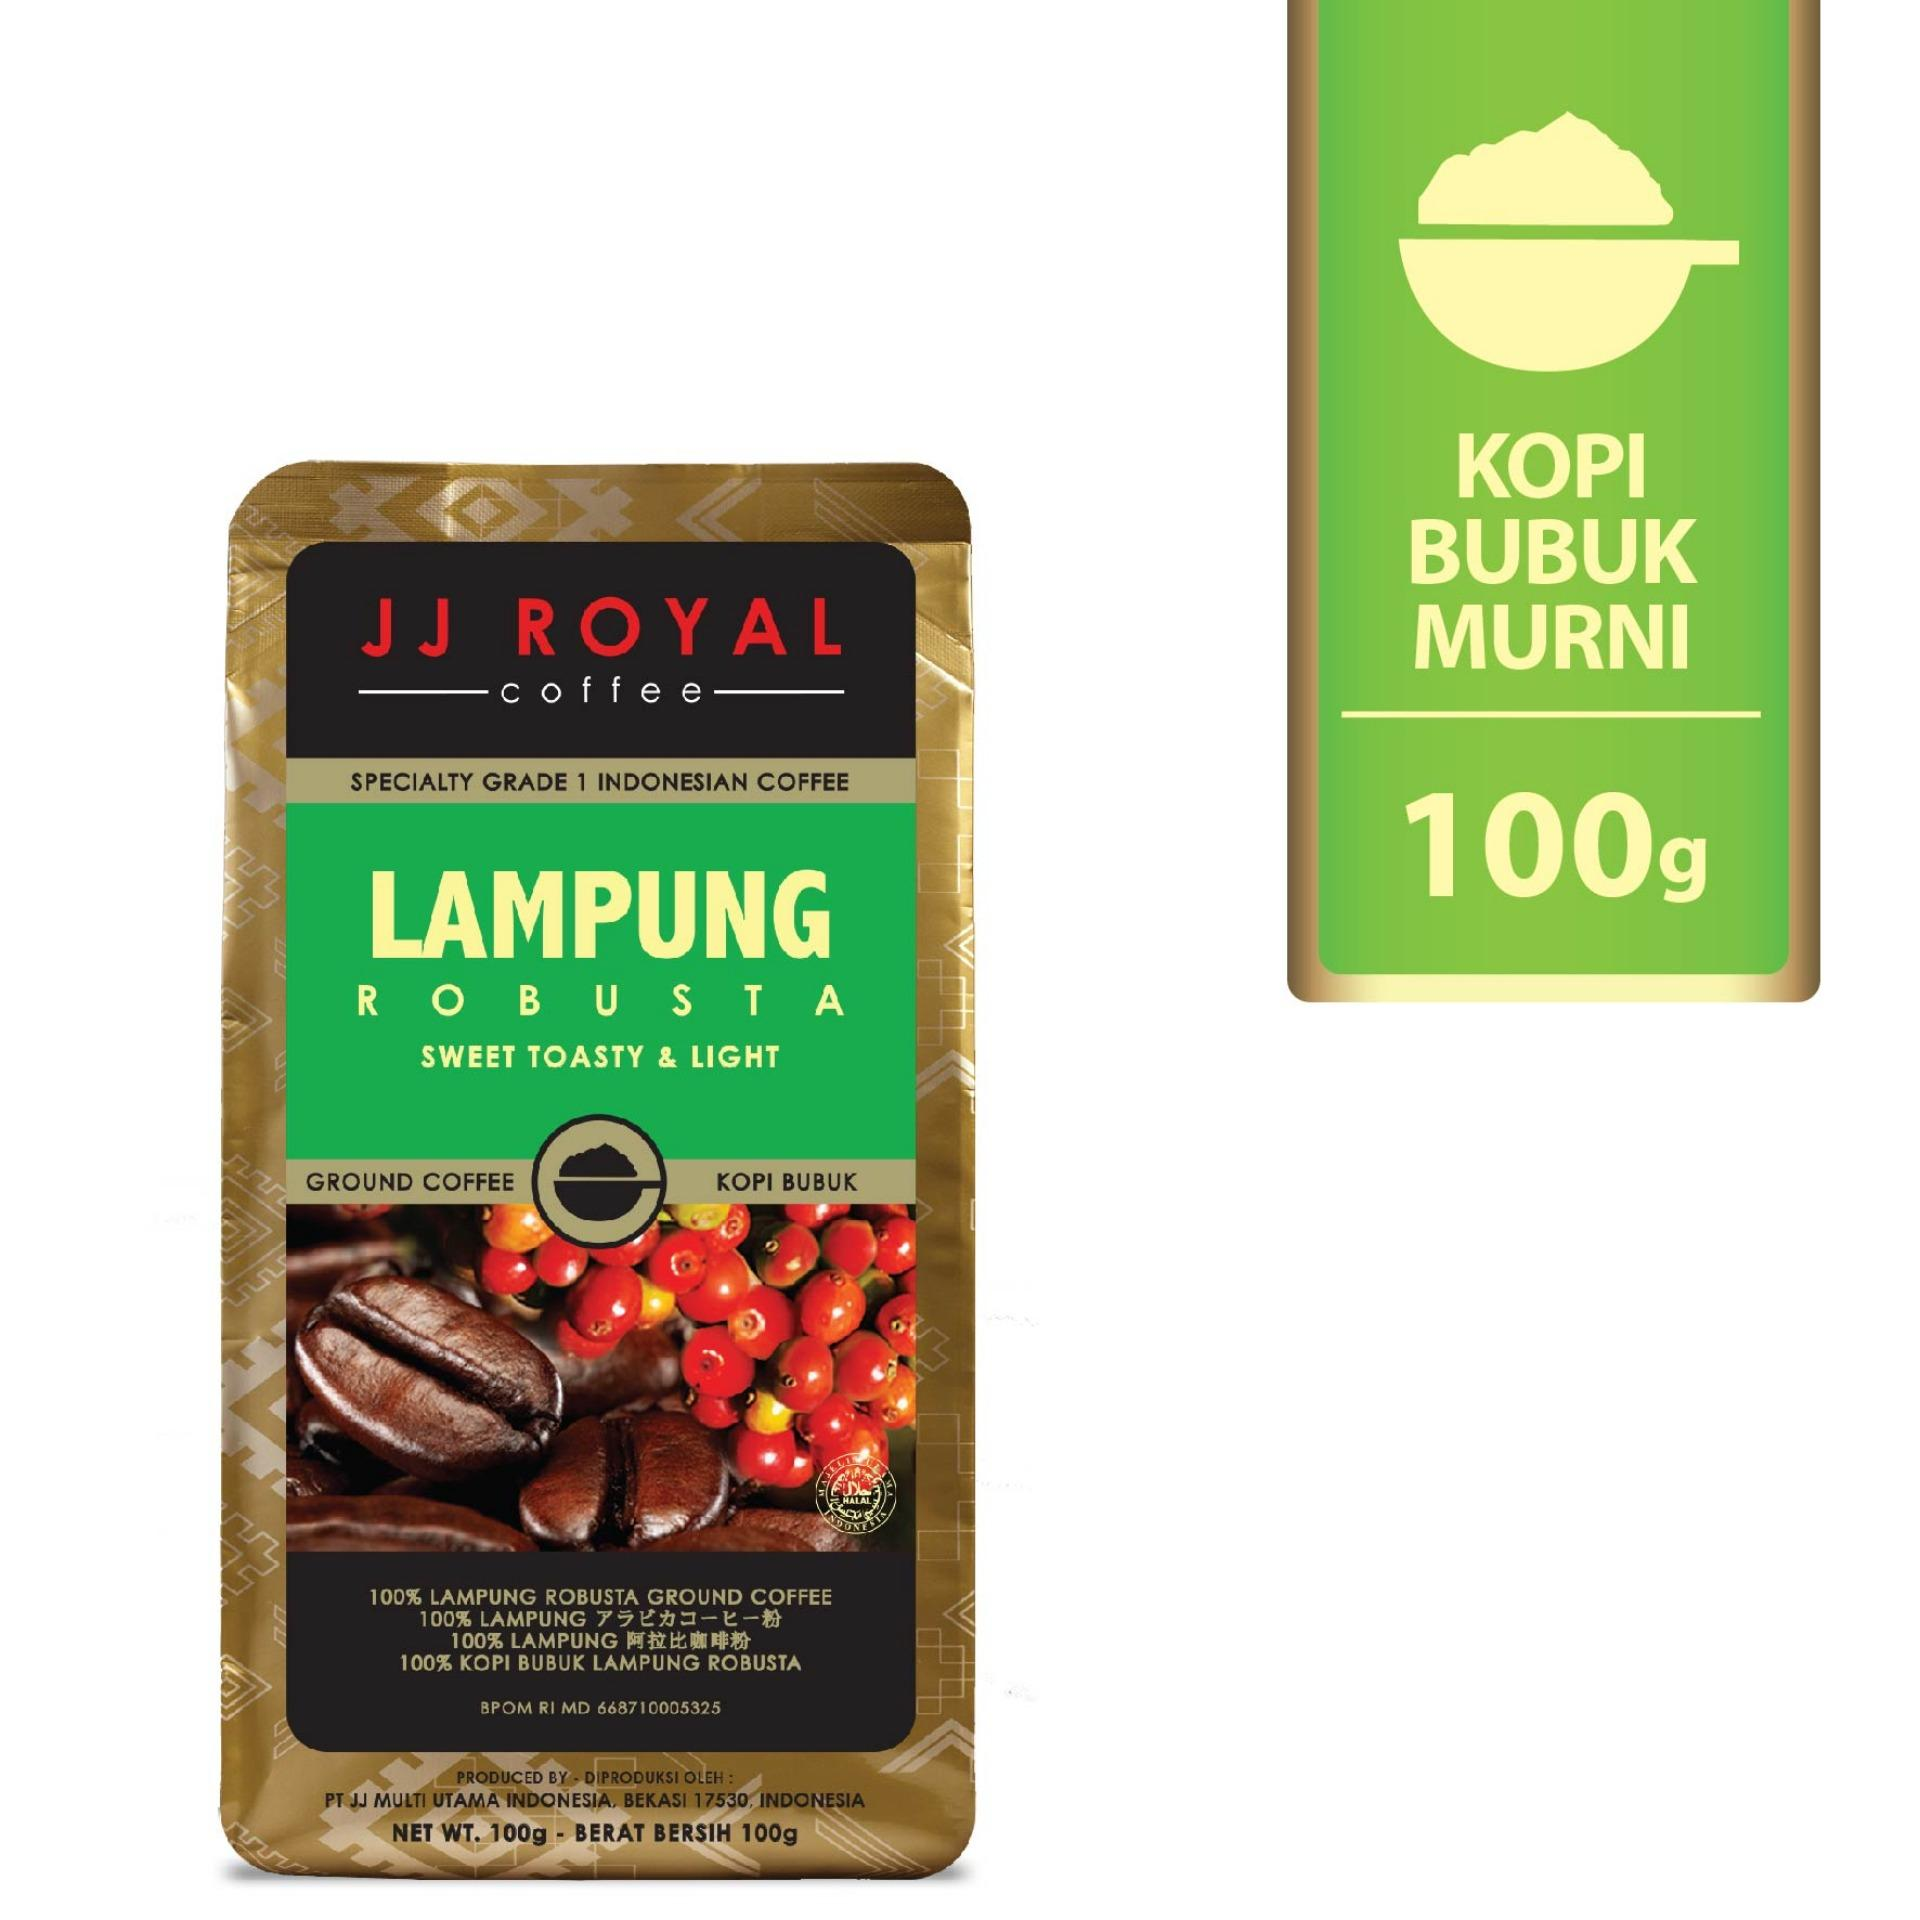 JJ Royal Coffee Lampung Robusta Ground (Kopi Bubuk) 100gr